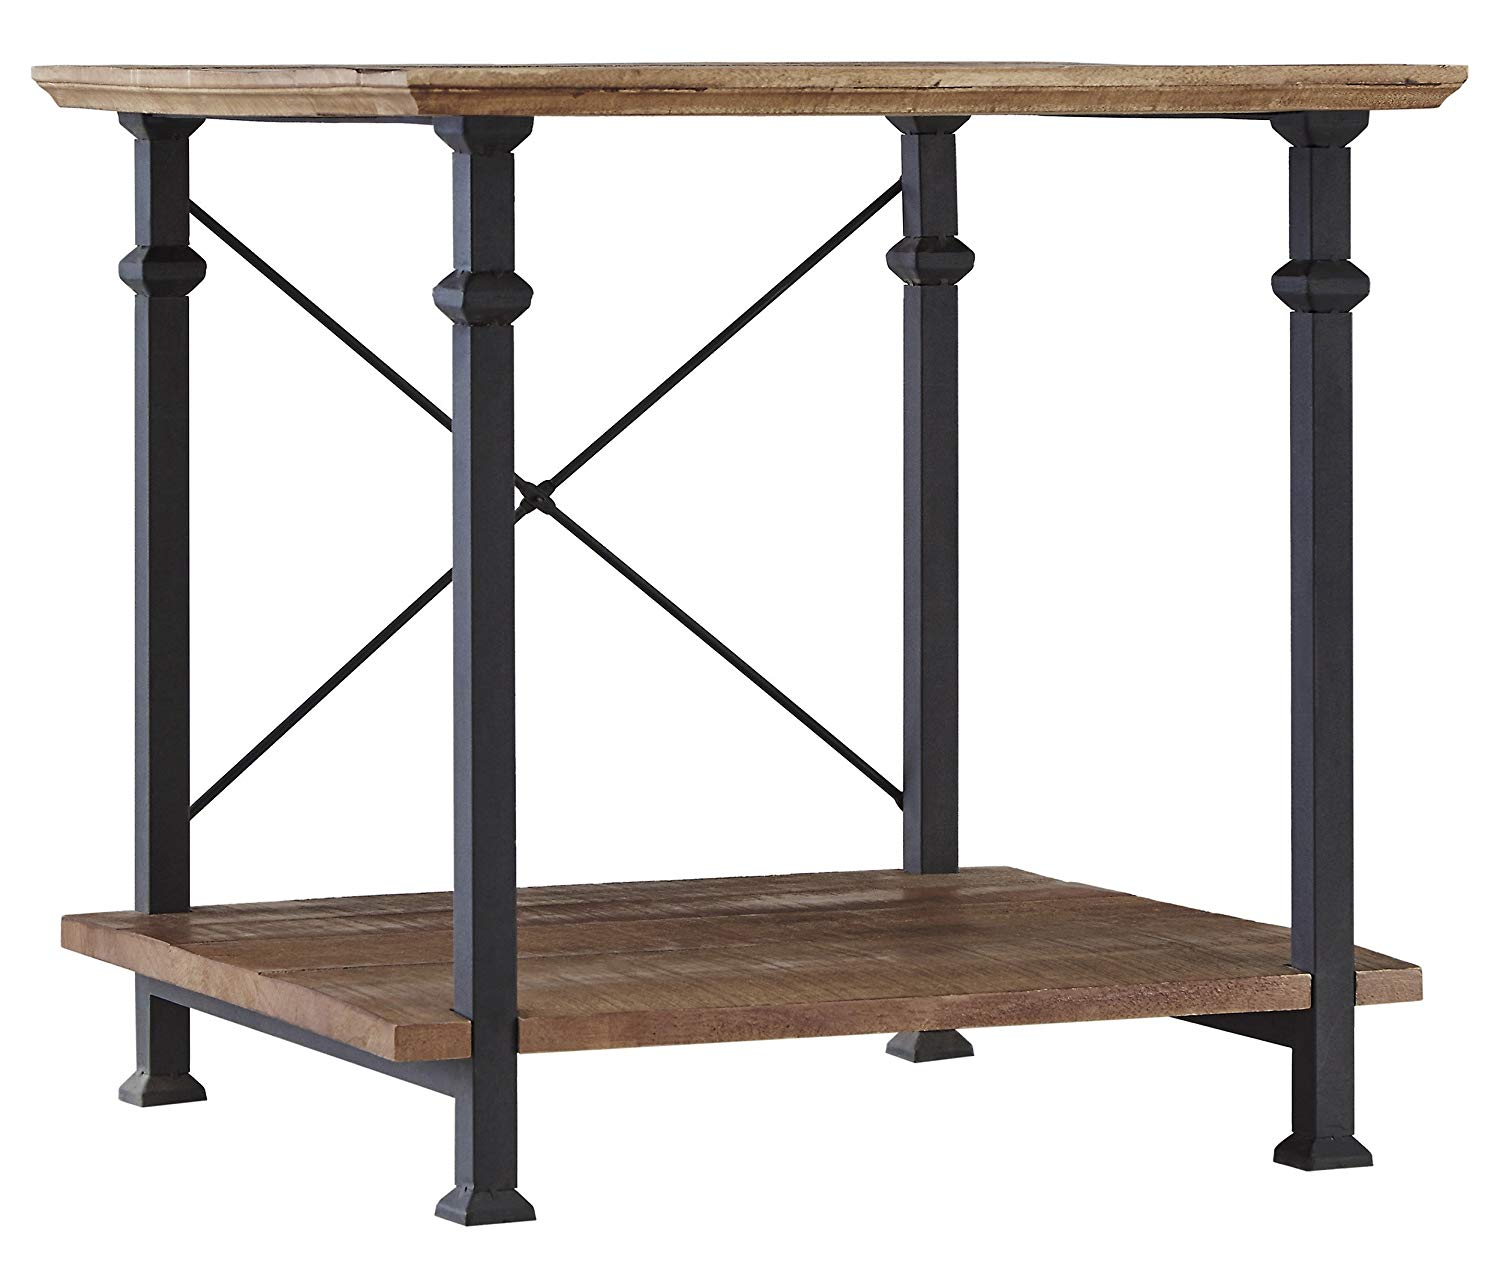 homelegance factory modern industrial style end table yrgl small half circle accent rustic brown kitchen dining trunk chest high behind couch west elm payment pair side tables